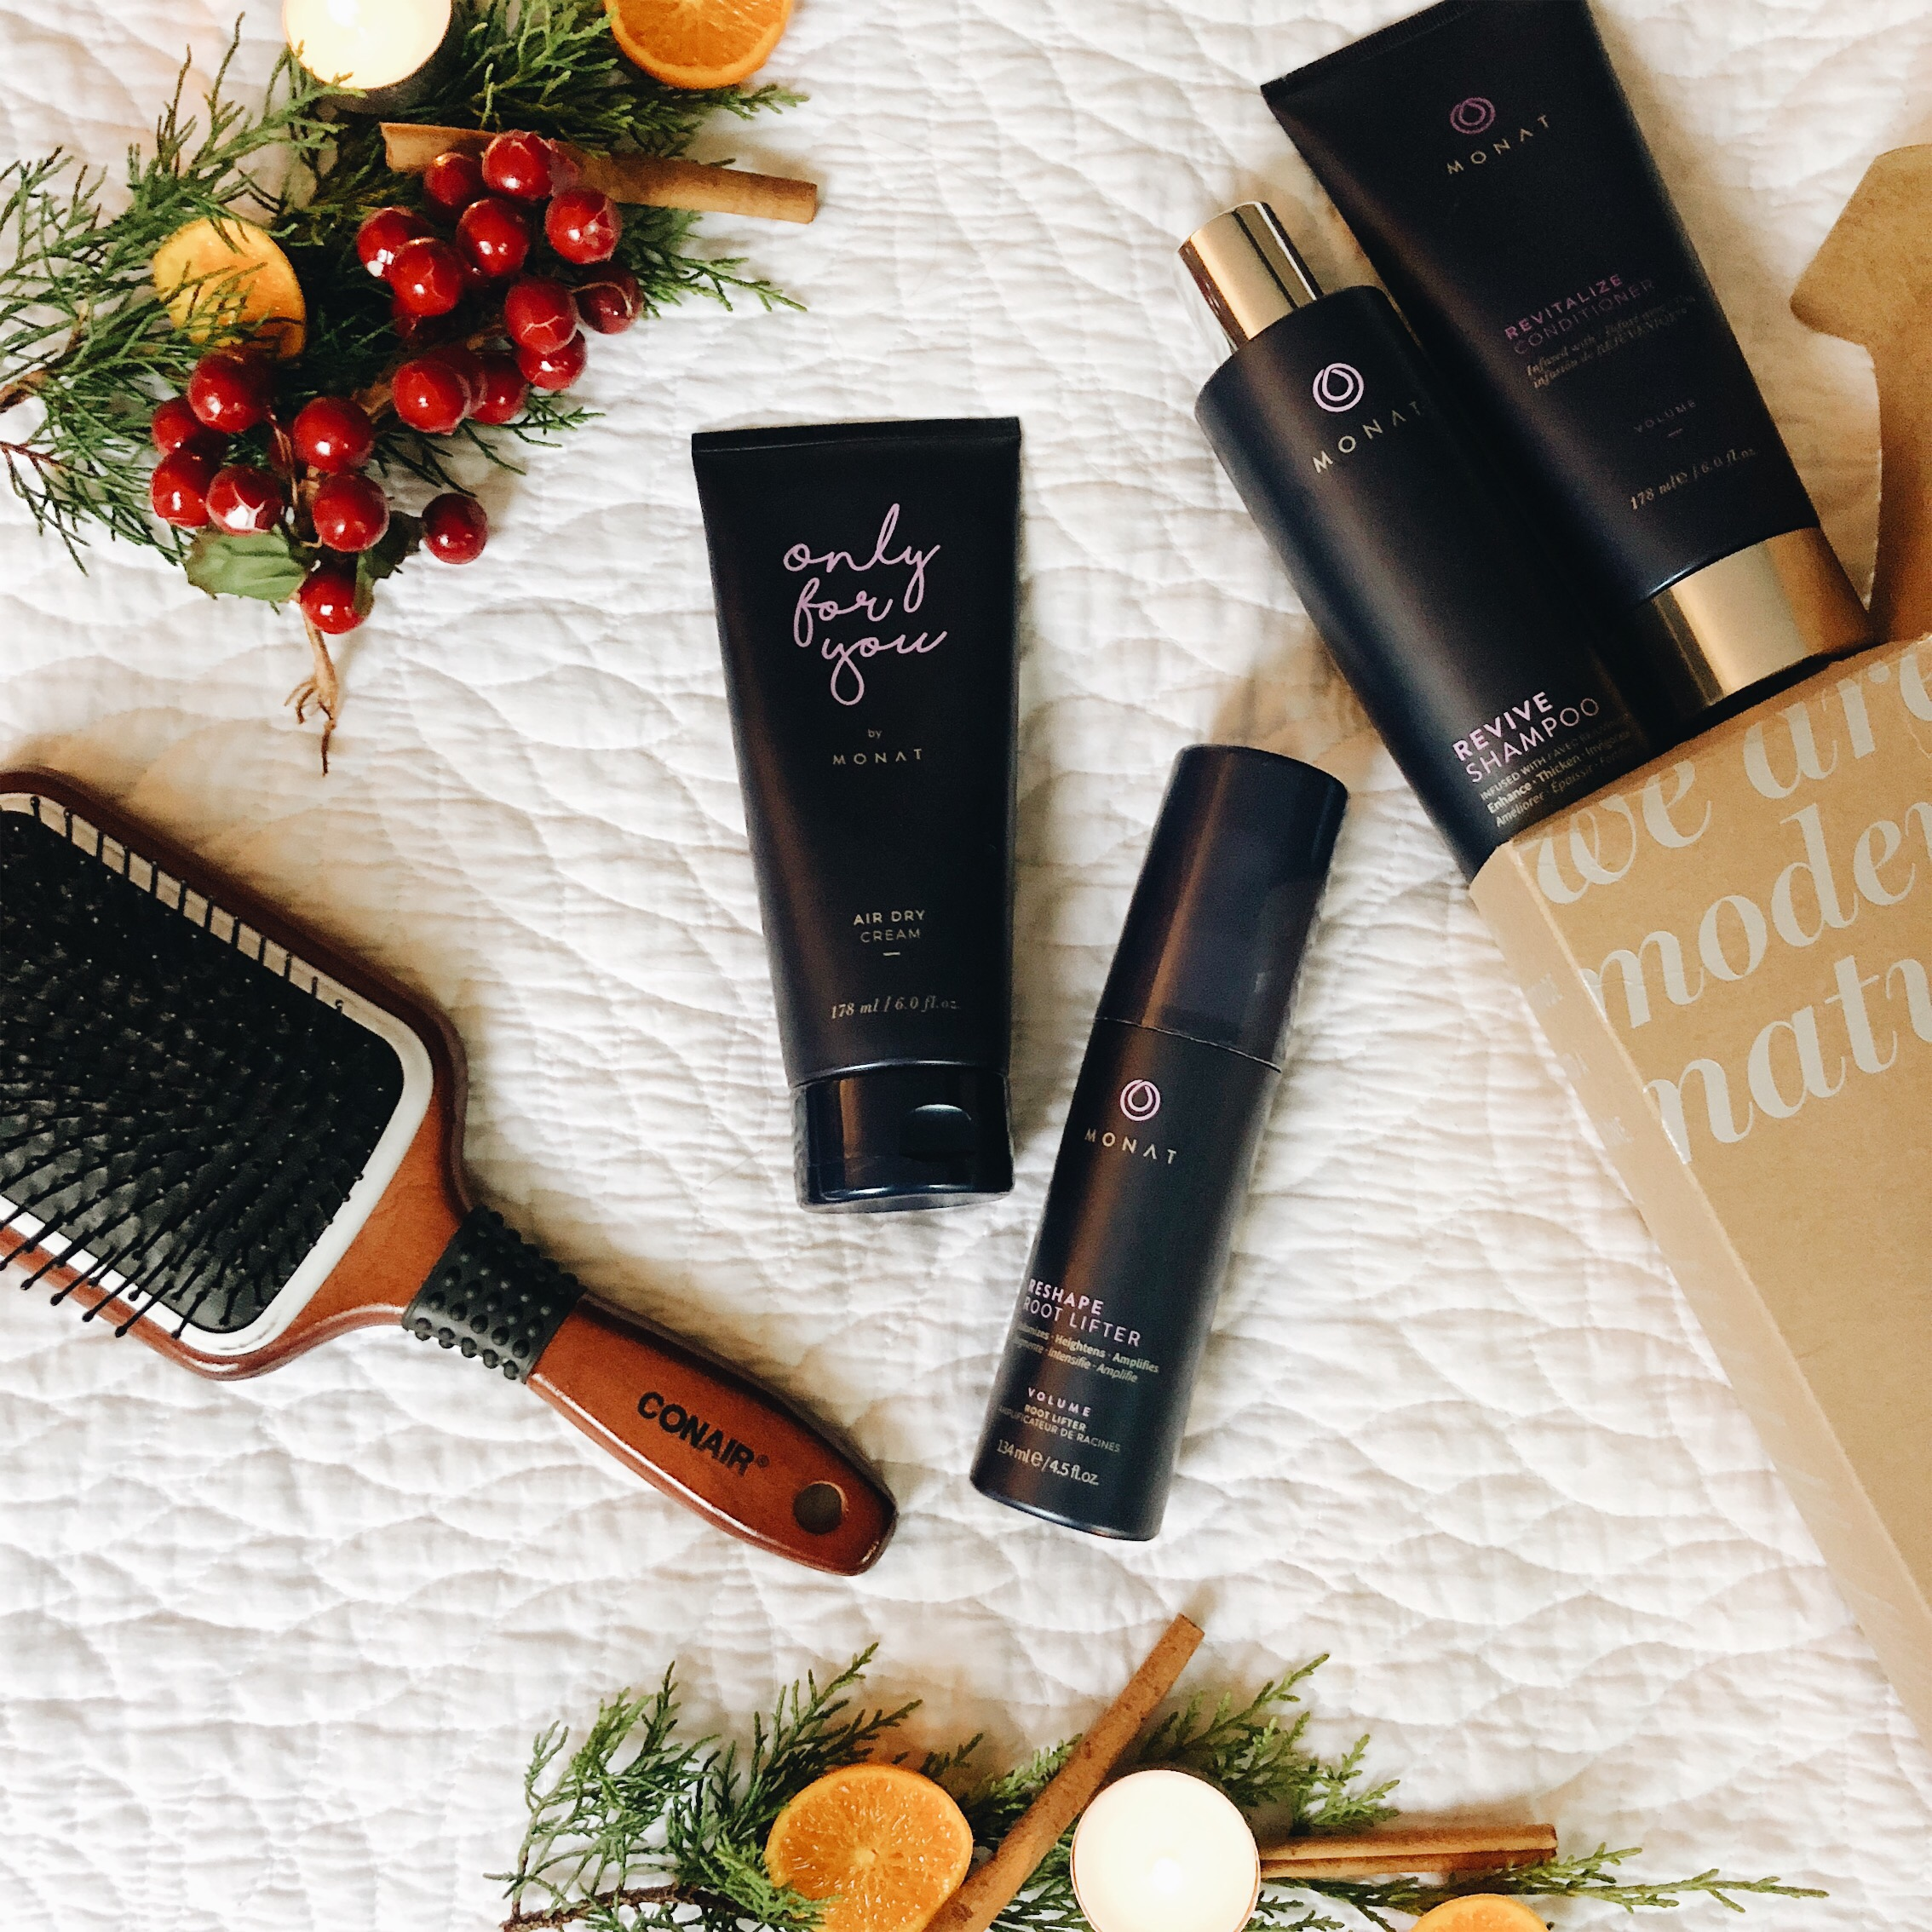 Hair Care - Empowering ladies to work for themselves and live the life they have always dreamed.